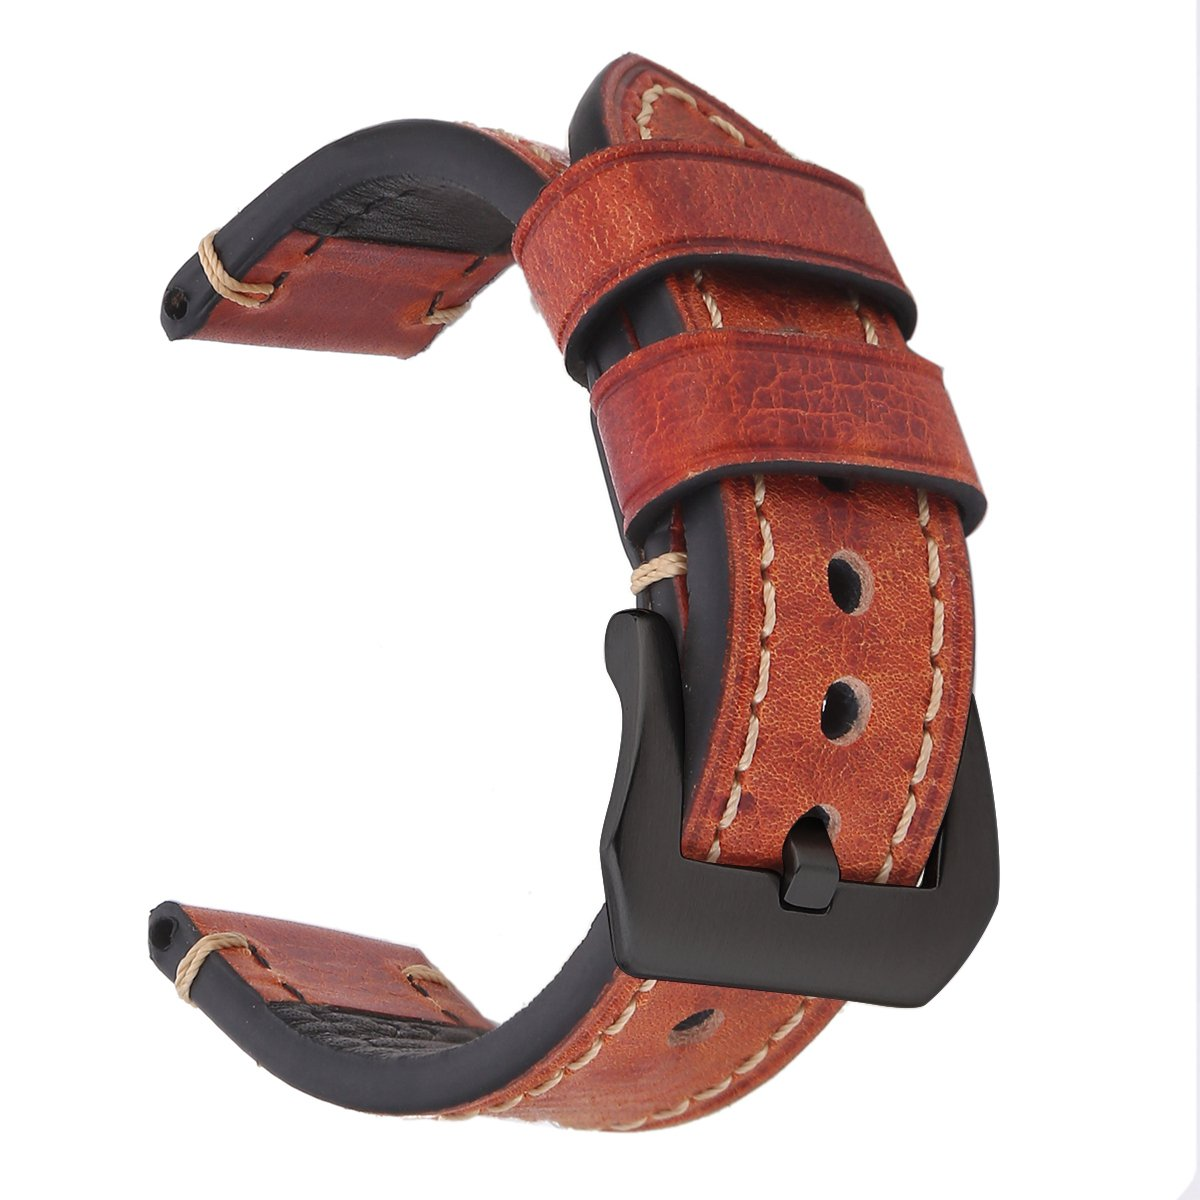 EACHE Leather Handmade 20mm Watch Band Red Brown-Black Hardware